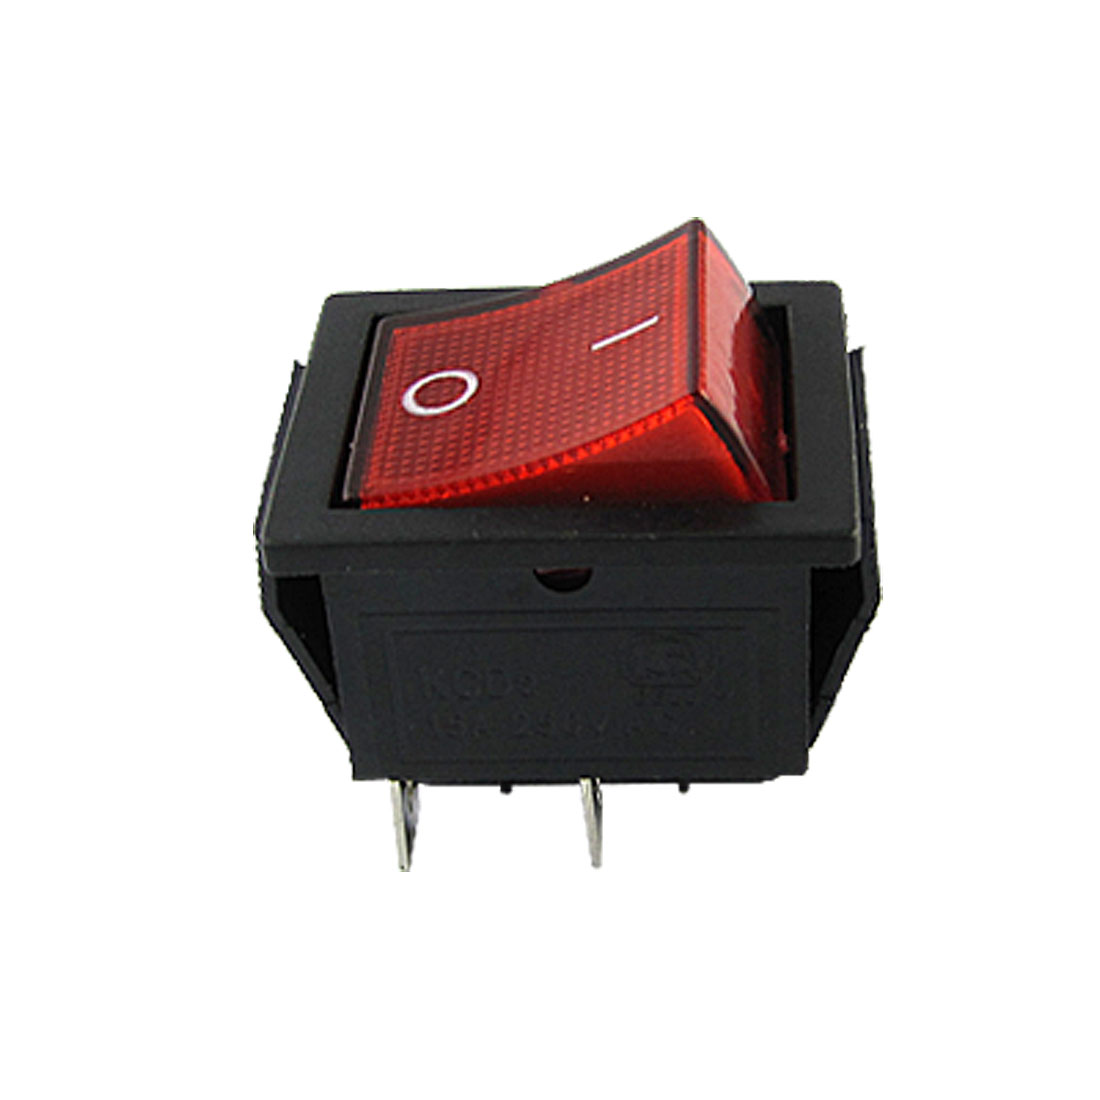 Red Light Illuminated 4 Pin DPST ON/OFF Snap in Boat Rocker Switch AC 5A 220V